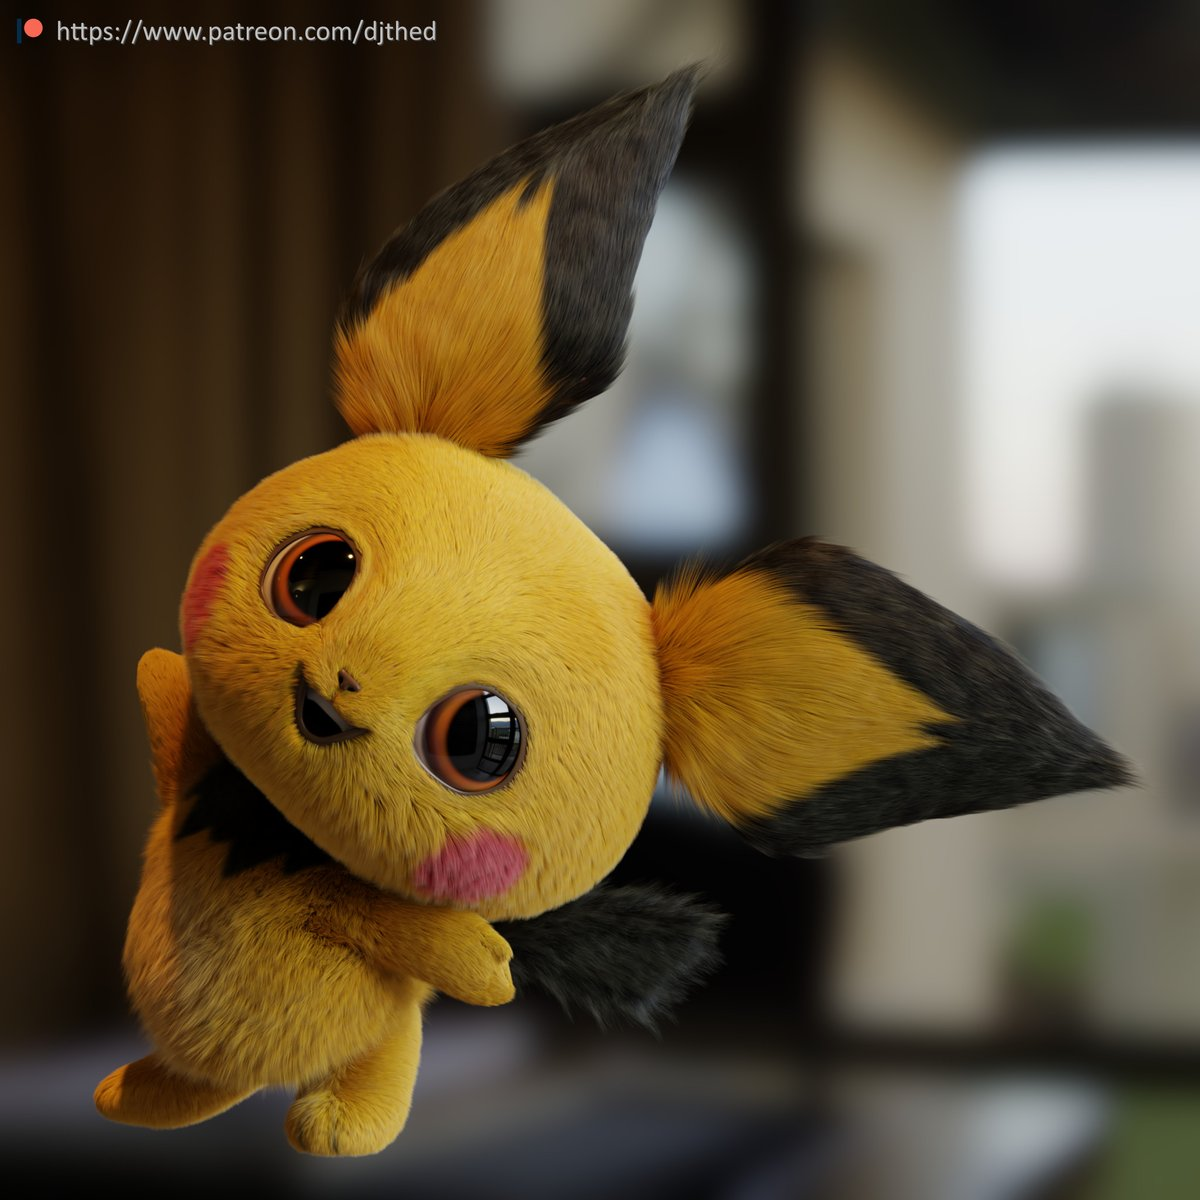 How Pichu would look in Pokemon Detective Pikachu by DJTHED